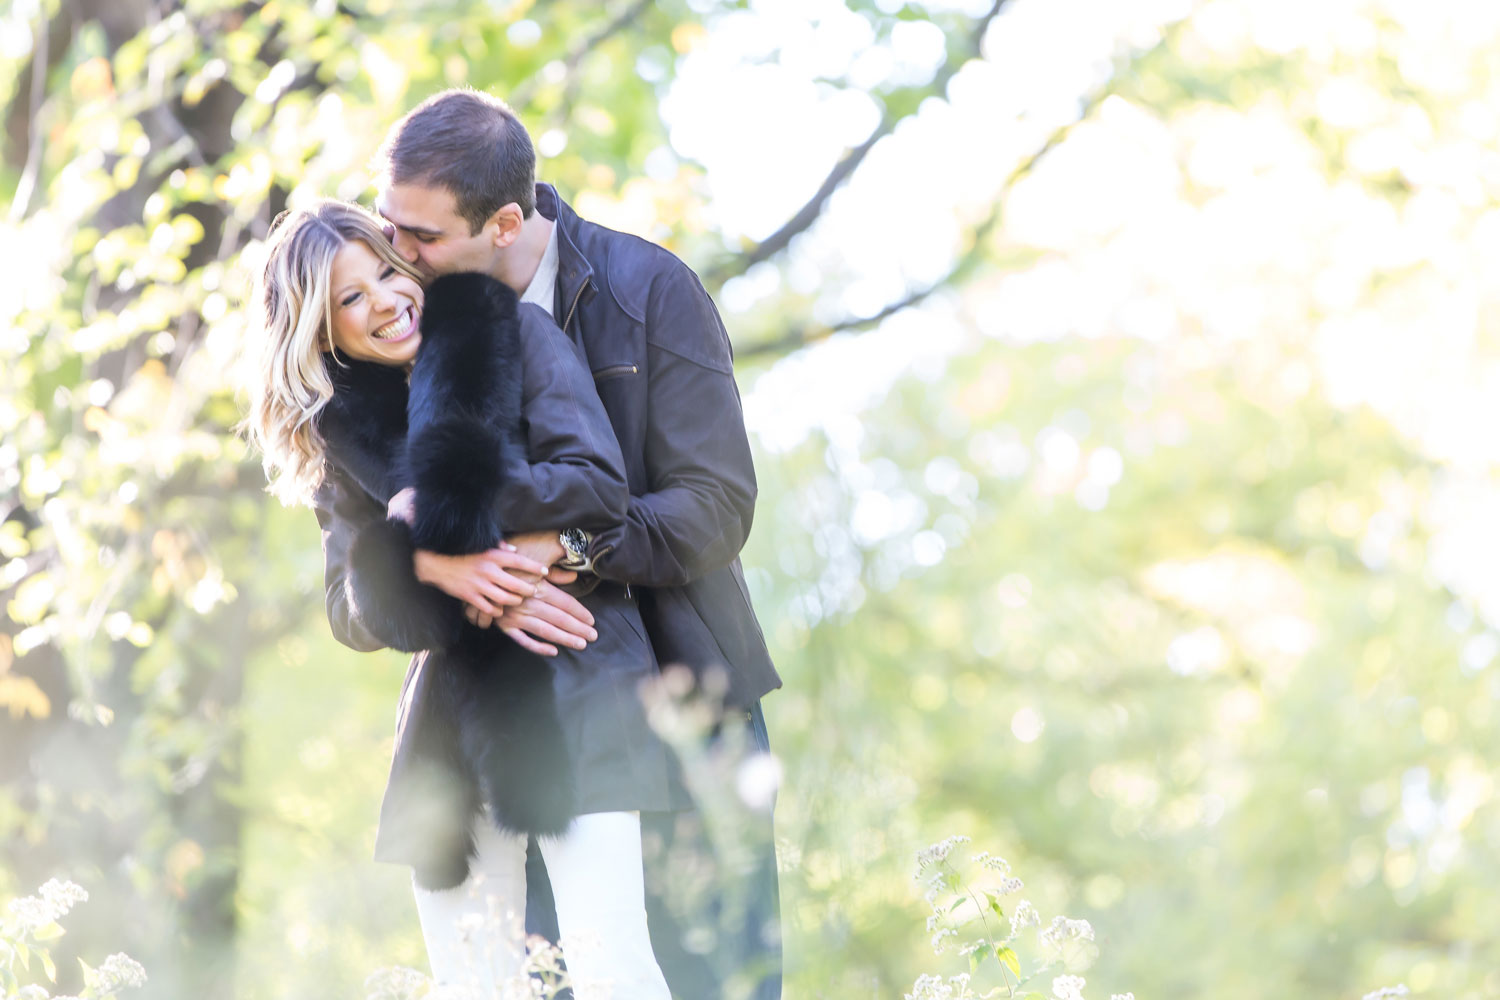 Bride laughing with groom central park new york engagement shoot ideas